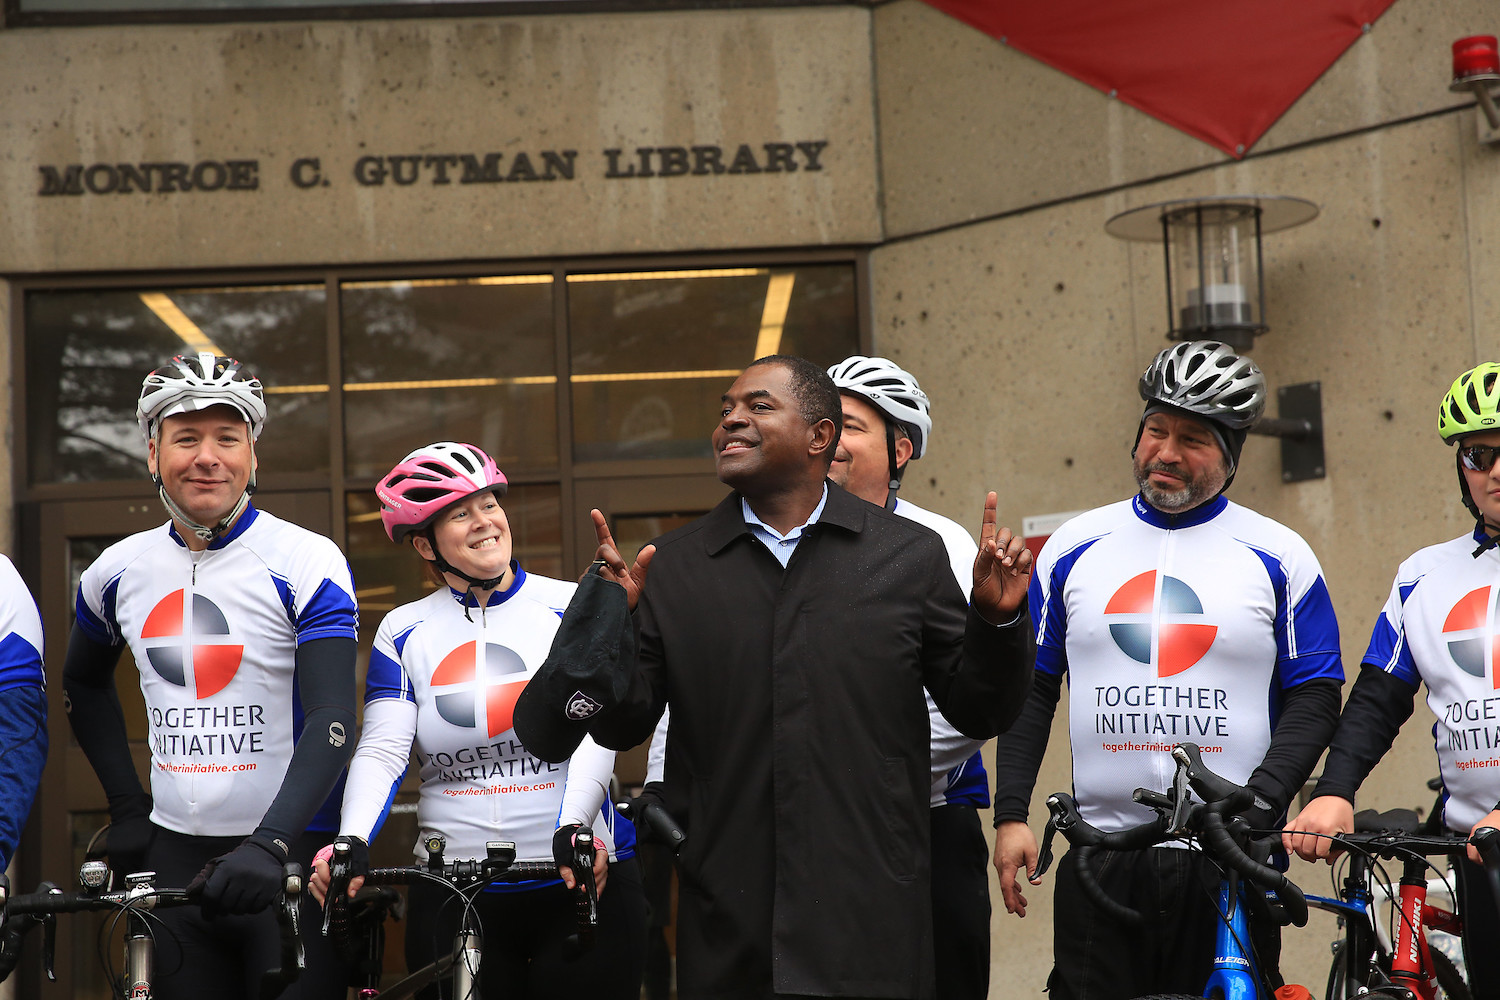 Irvin Scott and Pennsylvania educators, faith leaders who cycled to HGSE campus